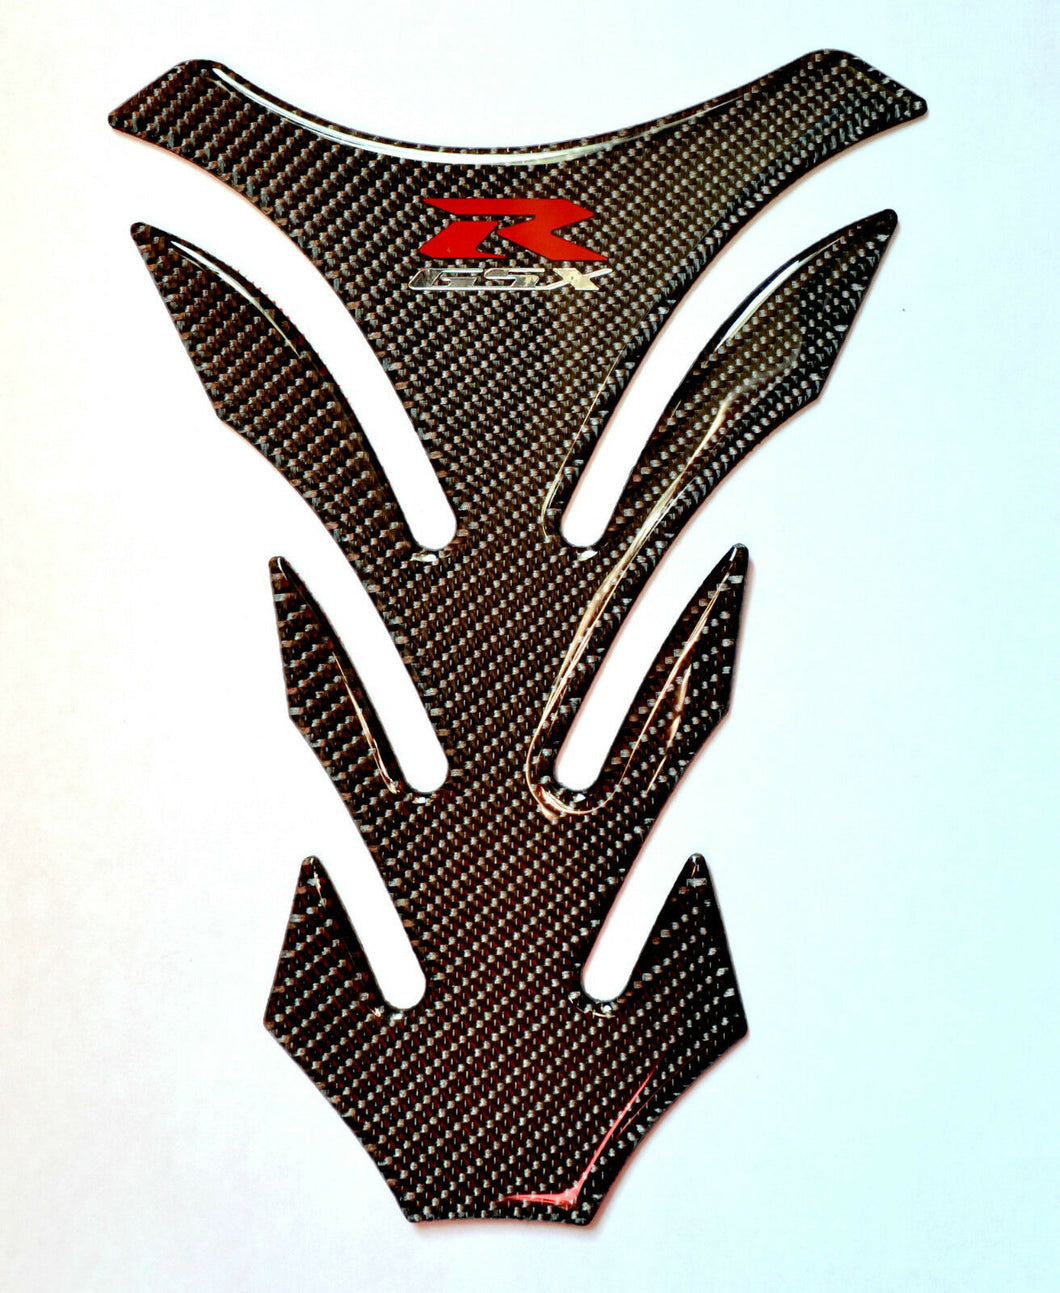 Suzuki GSX-R Authentic Carbon Fiber Tank Protector Pad Sticker trim made in USA